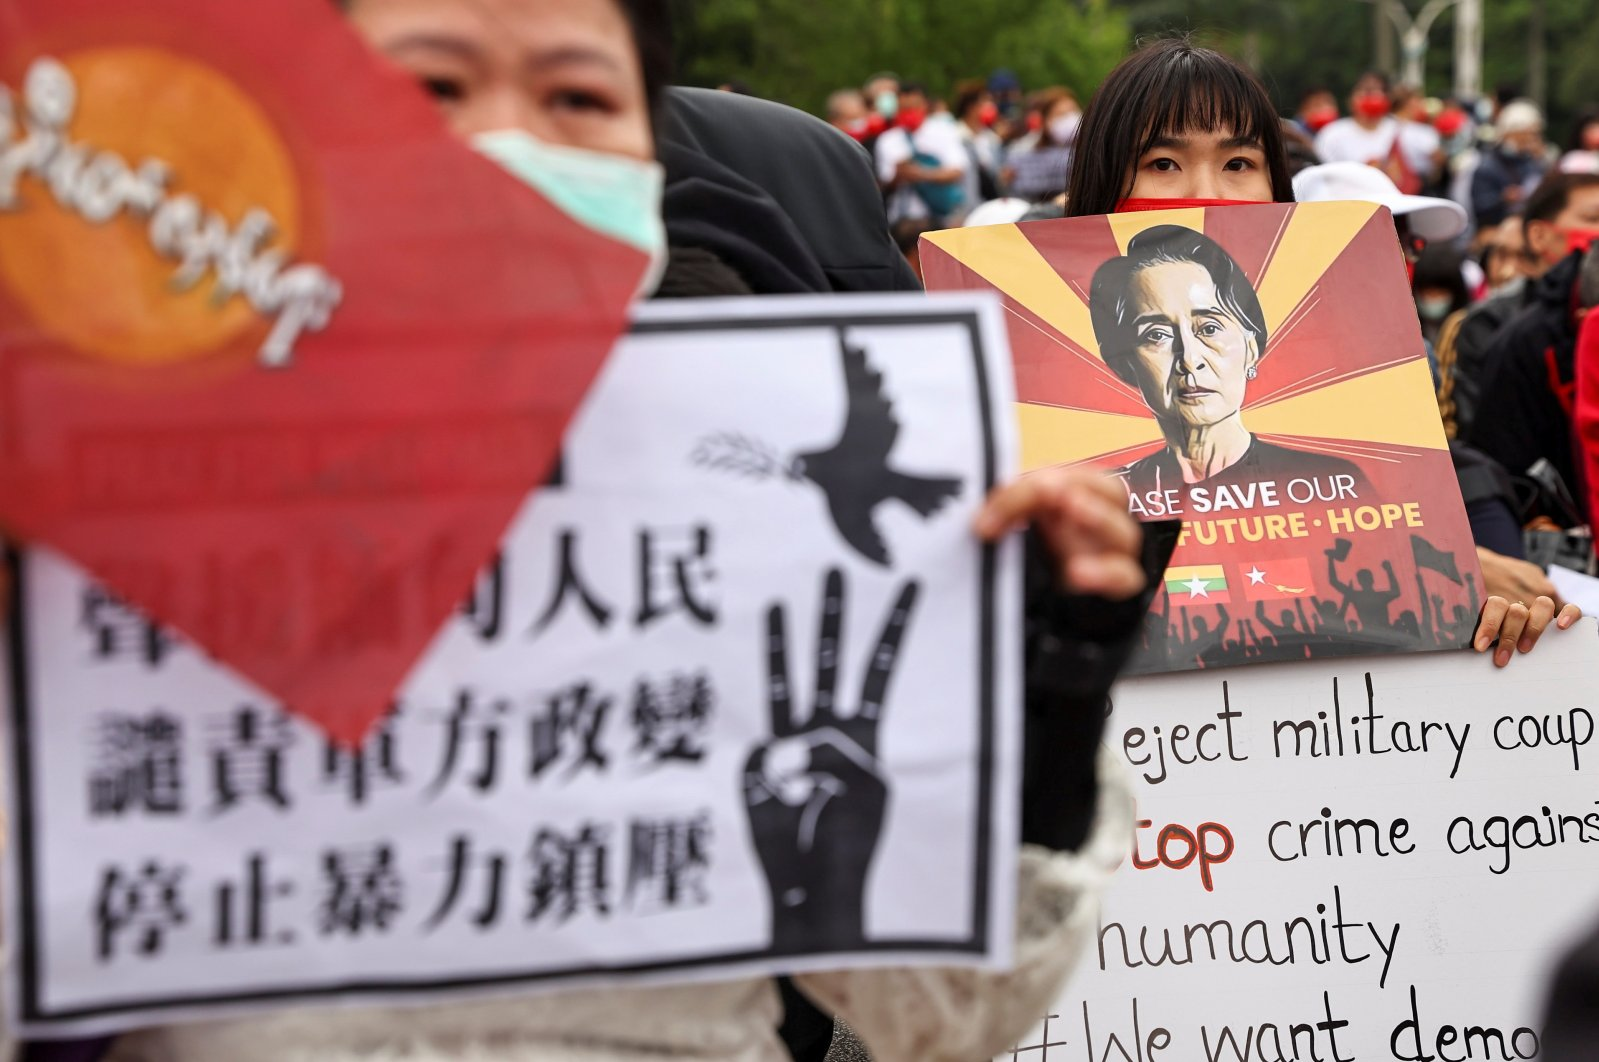 People hold placards as they gather to denounce the Myanmar military coup, in Taipei, Taiwan, March 21, 2021. (Reuters)